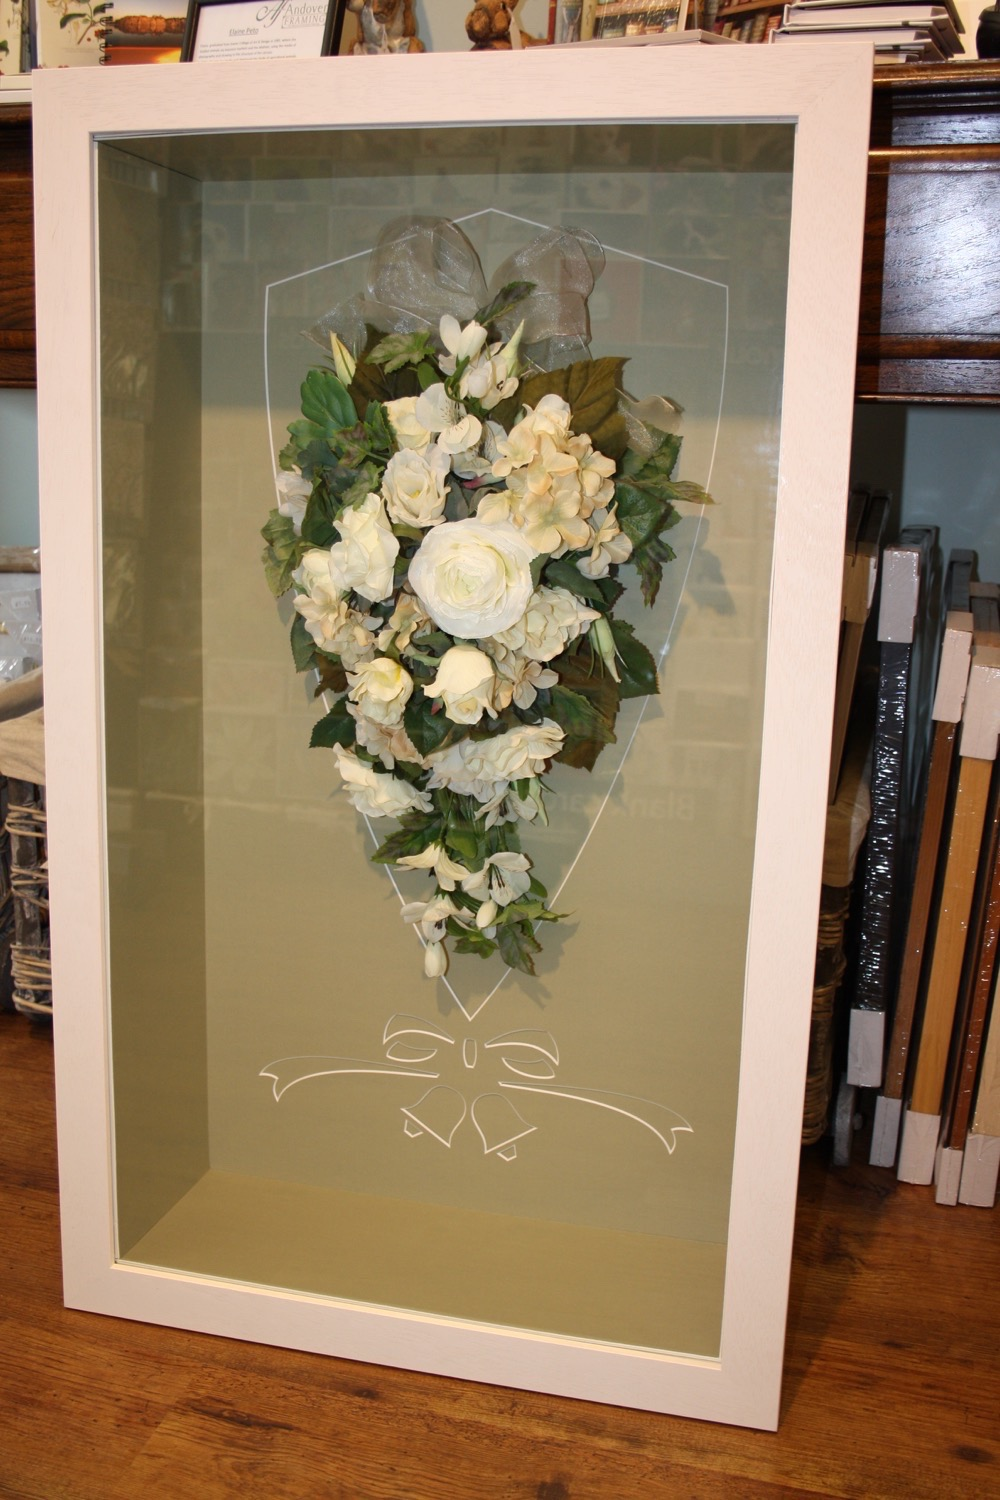 hampshire-picture-framing-specialist-mounting-004.JPG